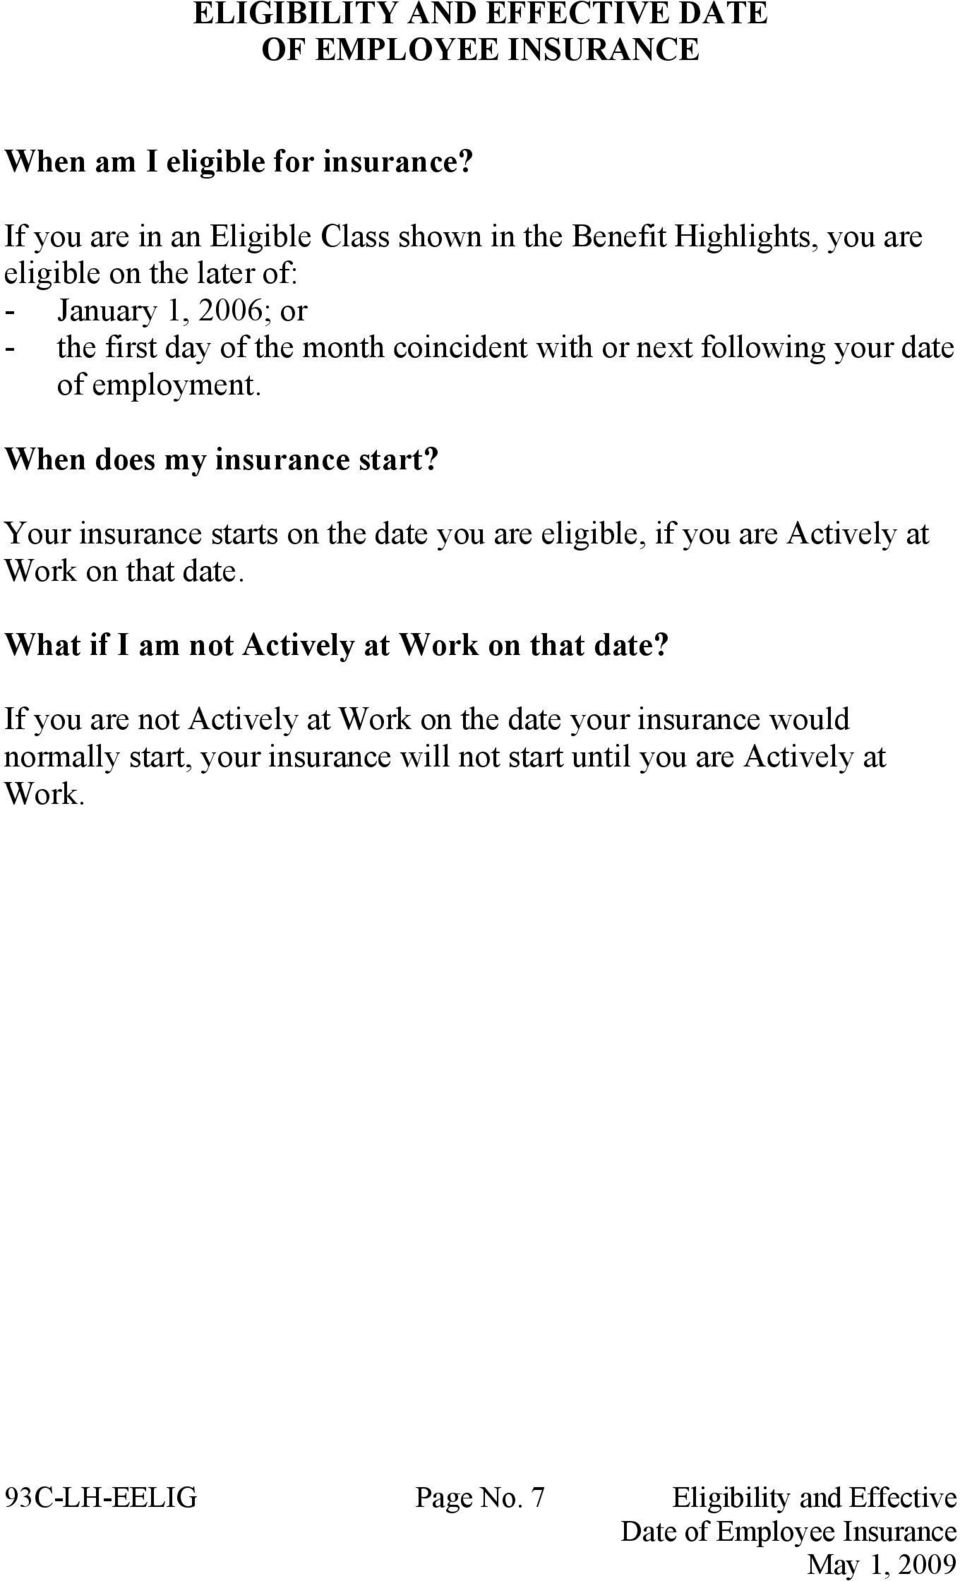 next following your date of employment. When does my insurance start? Your insurance starts on the date you are eligible, if you are Actively at Work on that date.